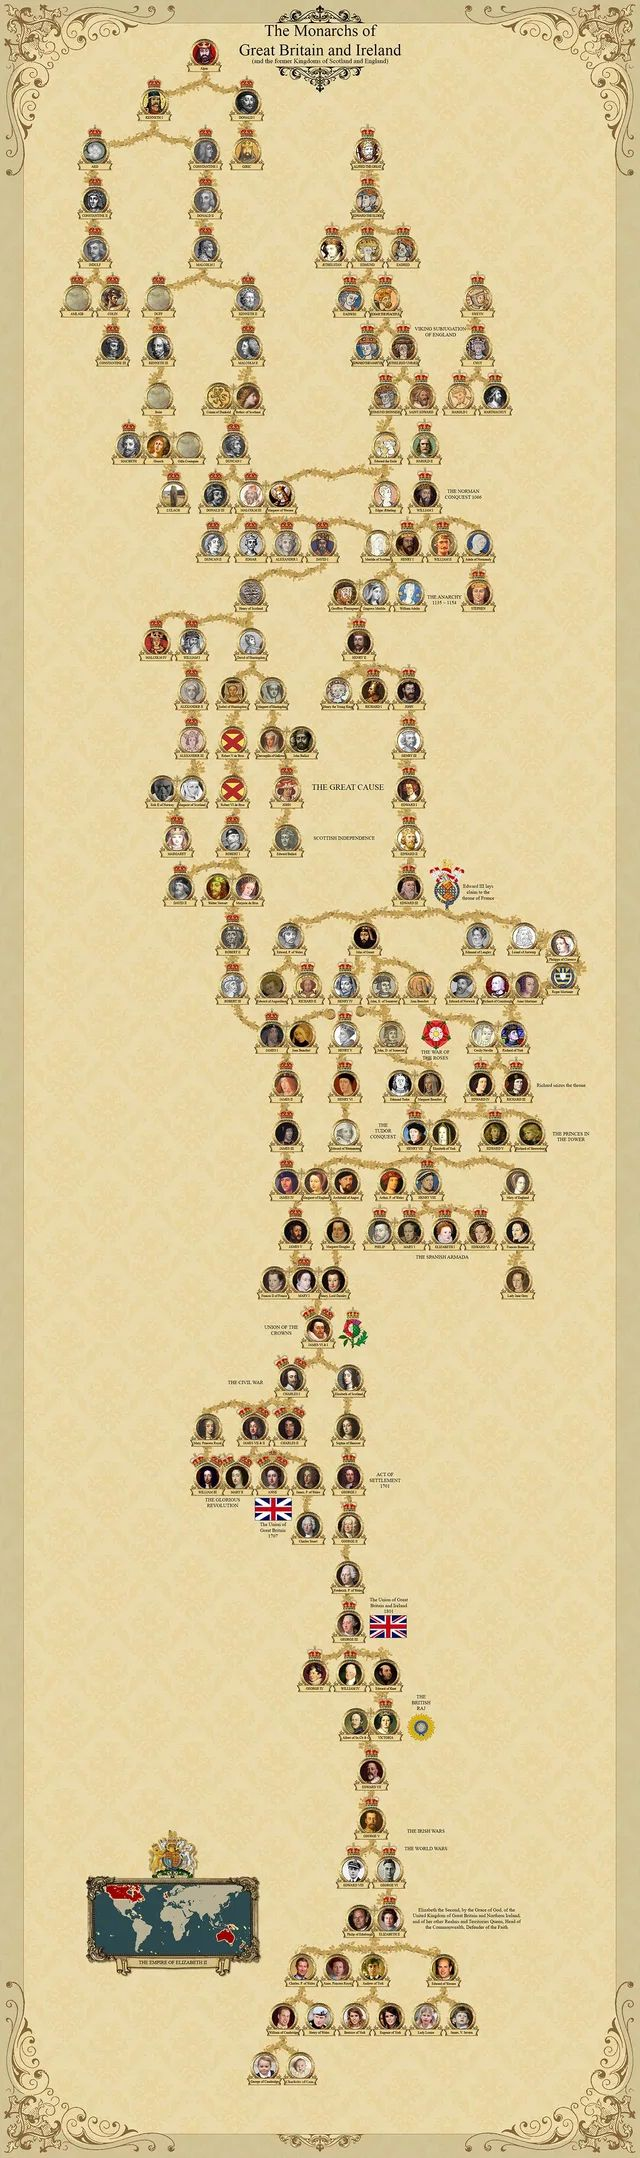 the best english royal family tree ideas the the monarchs of great britain and a simplified family tree along notations of brief events throughout their history